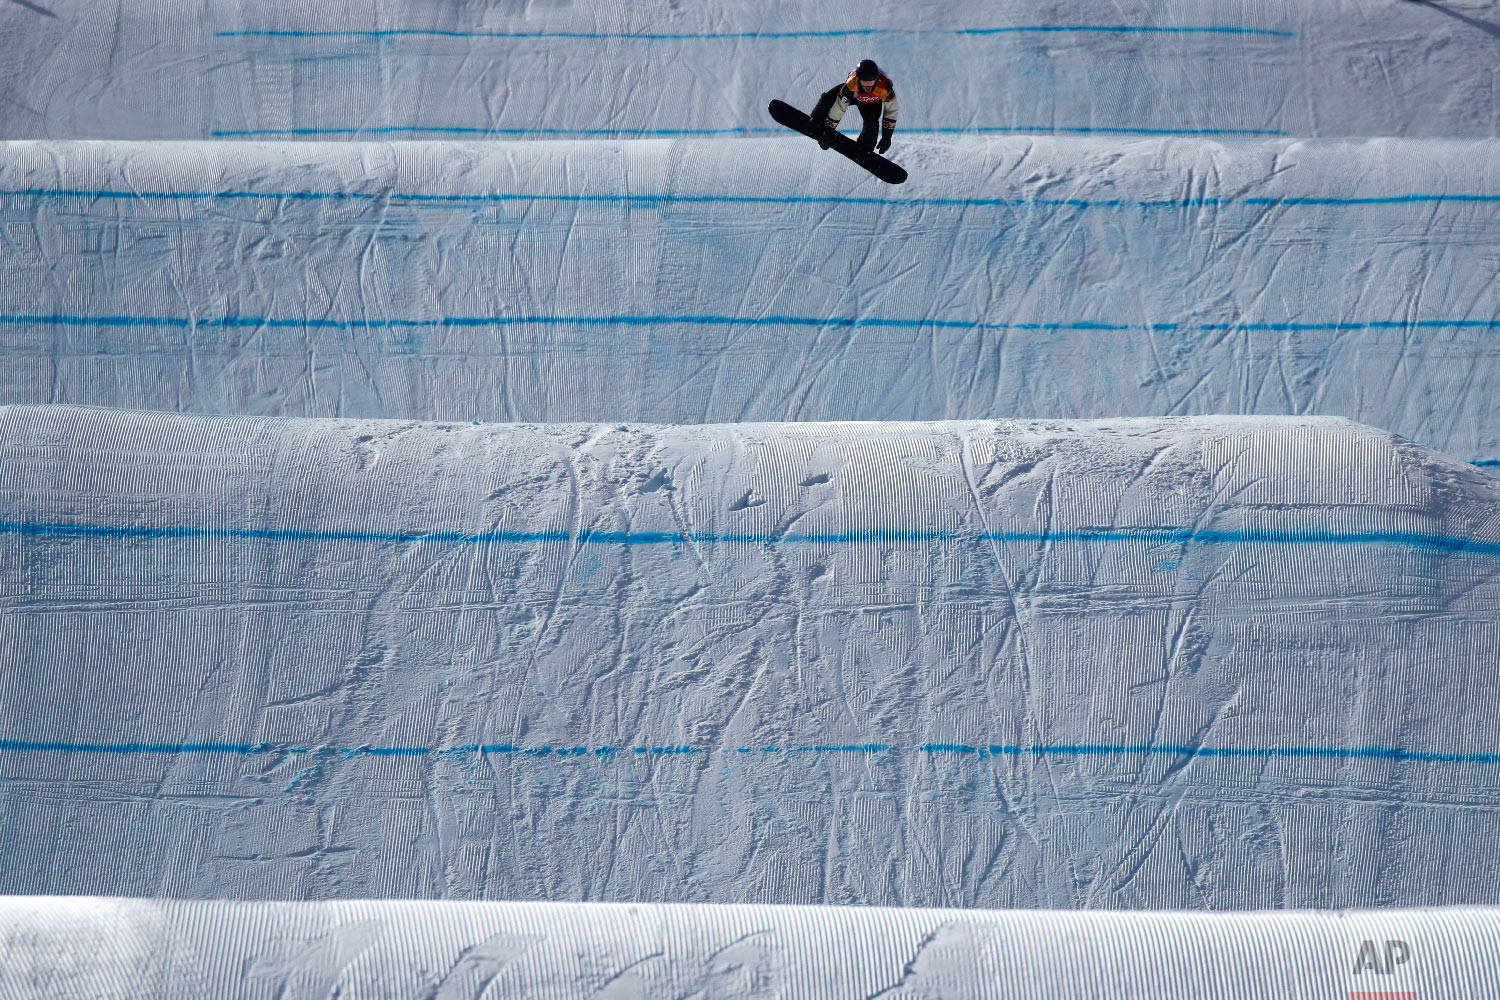 Max Parrot, of Canada, jumps during the men's slopestyle final at Phoenix Snow Park at the 2018 Winter Olympics in Pyeongchang, South Korea, Sunday, Feb. 11, 2018. (AP Photo/Jae C. Hong)